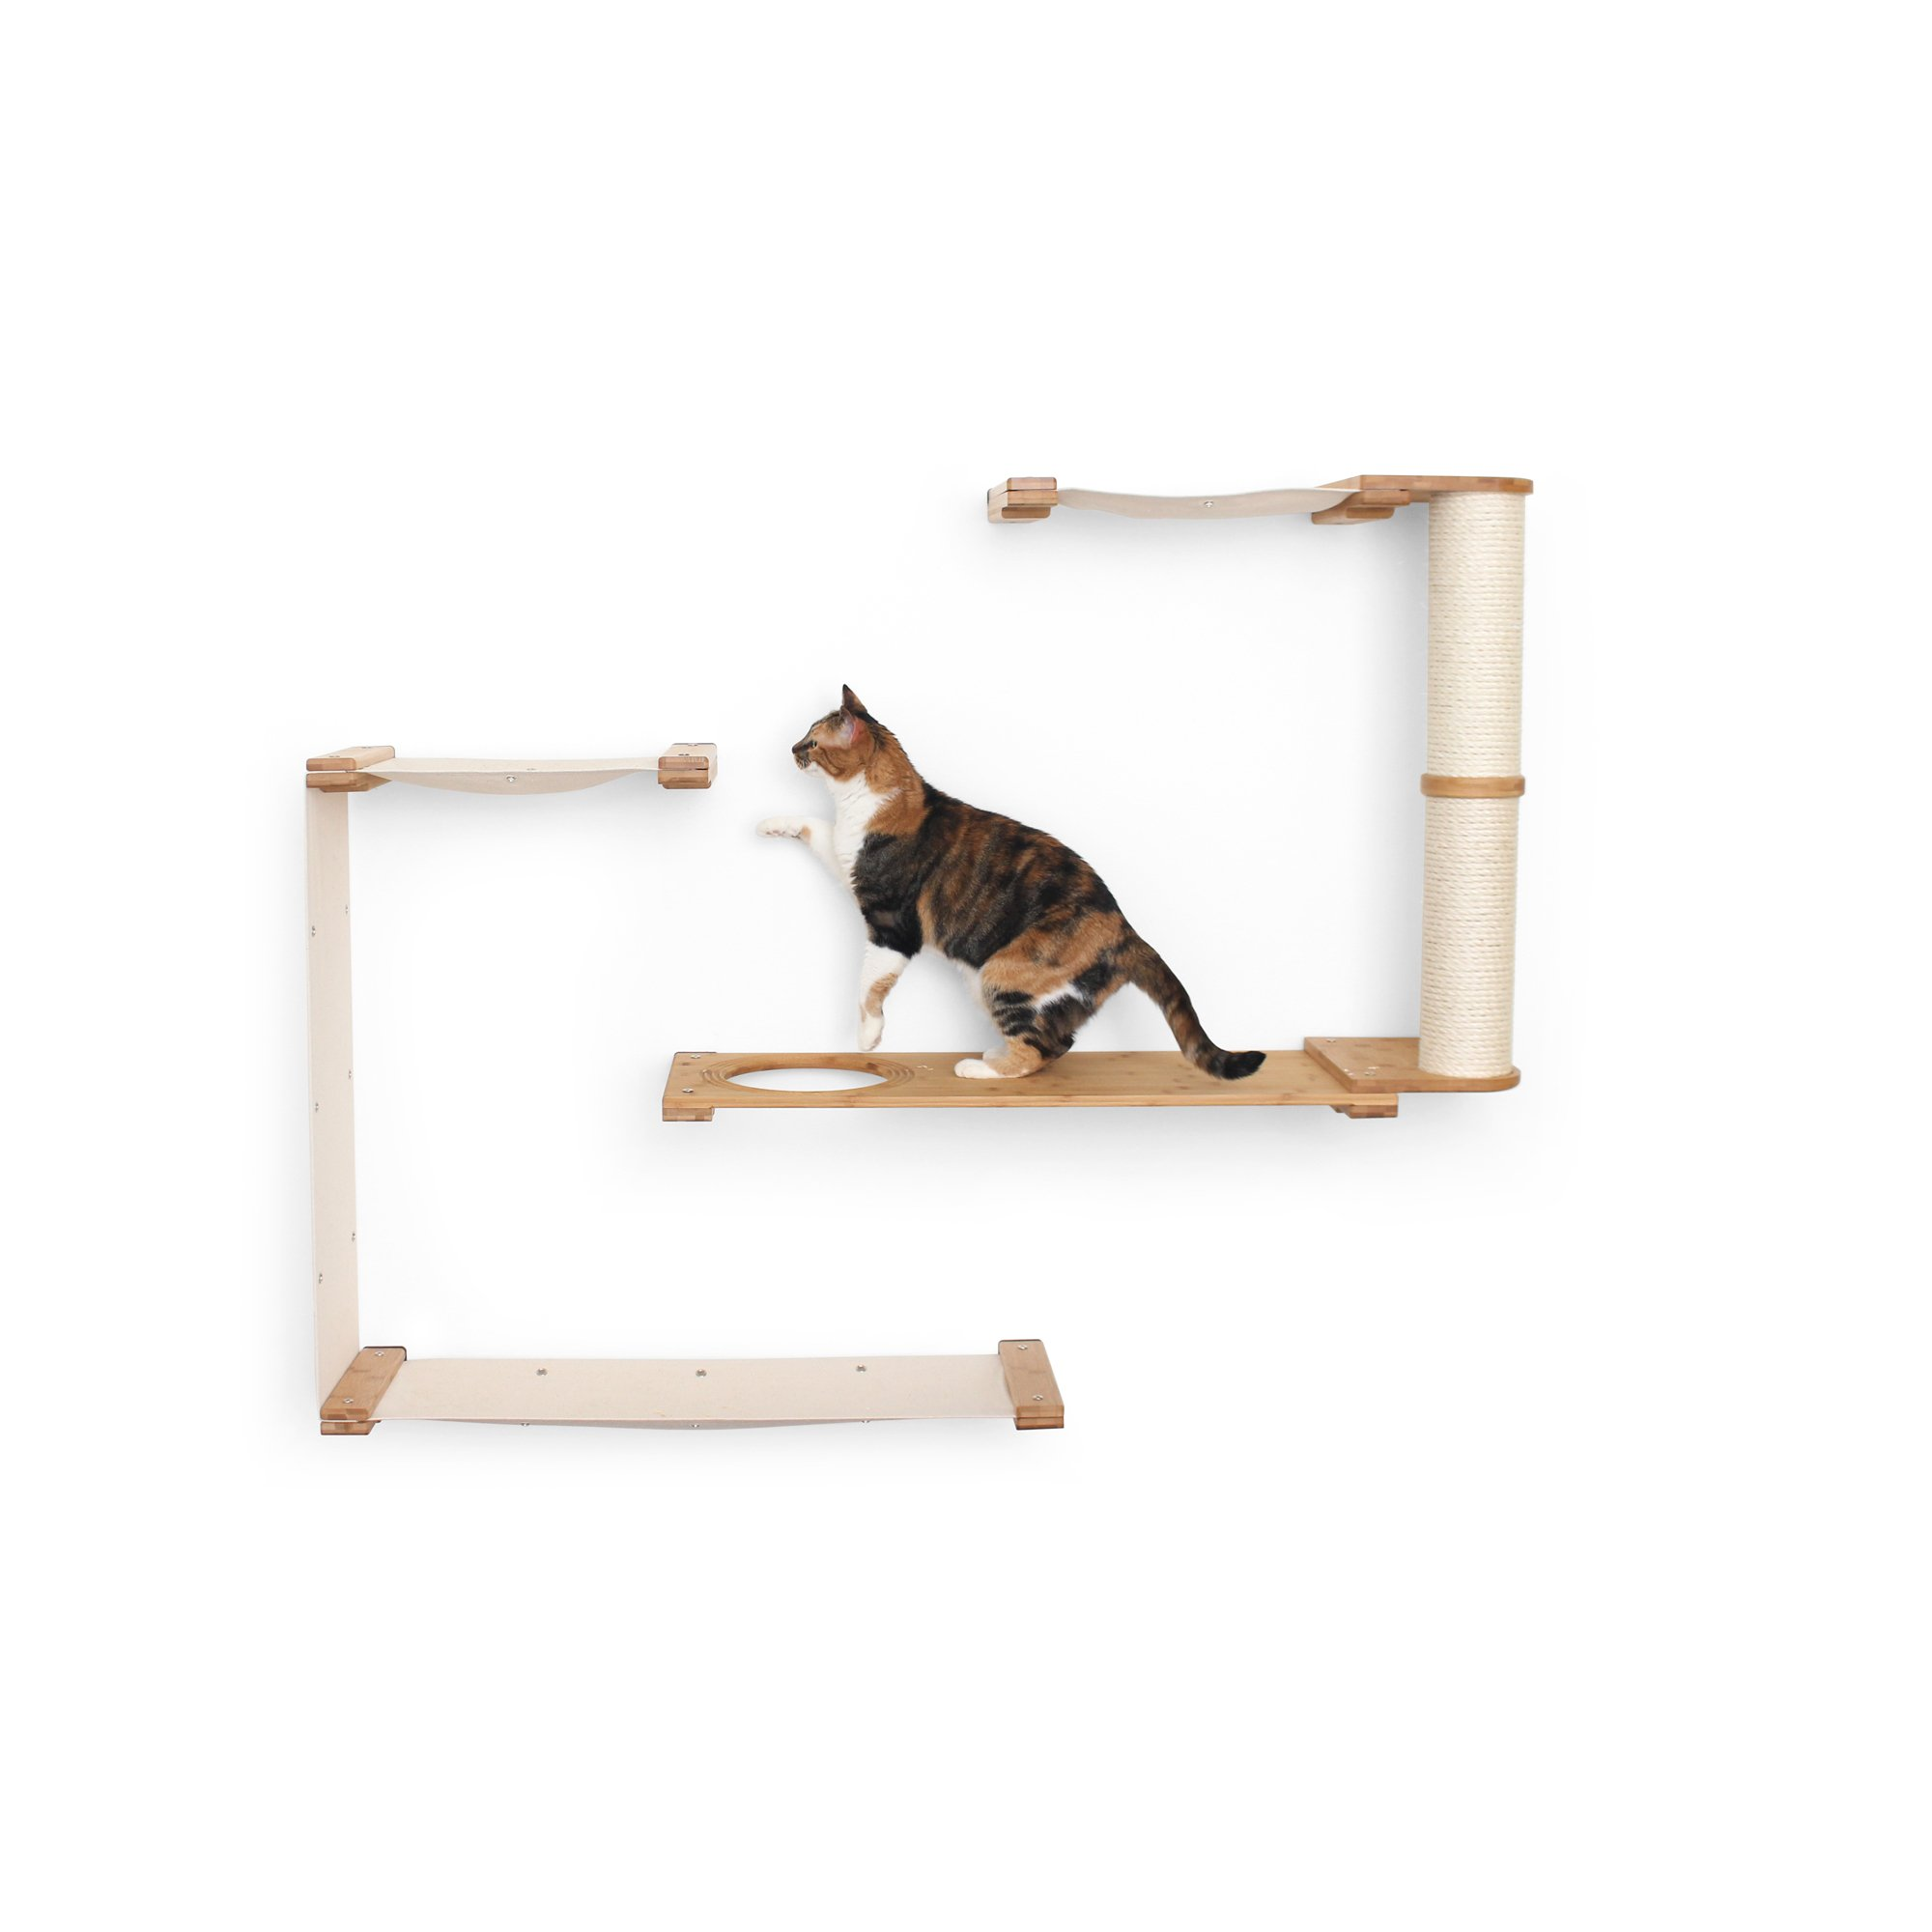 Catastrophicreations The Cat Mod Dakota Hammocks With Scratching Pole For Cats In English Chestnut, 55 In W X 45 In H, 32 Lb